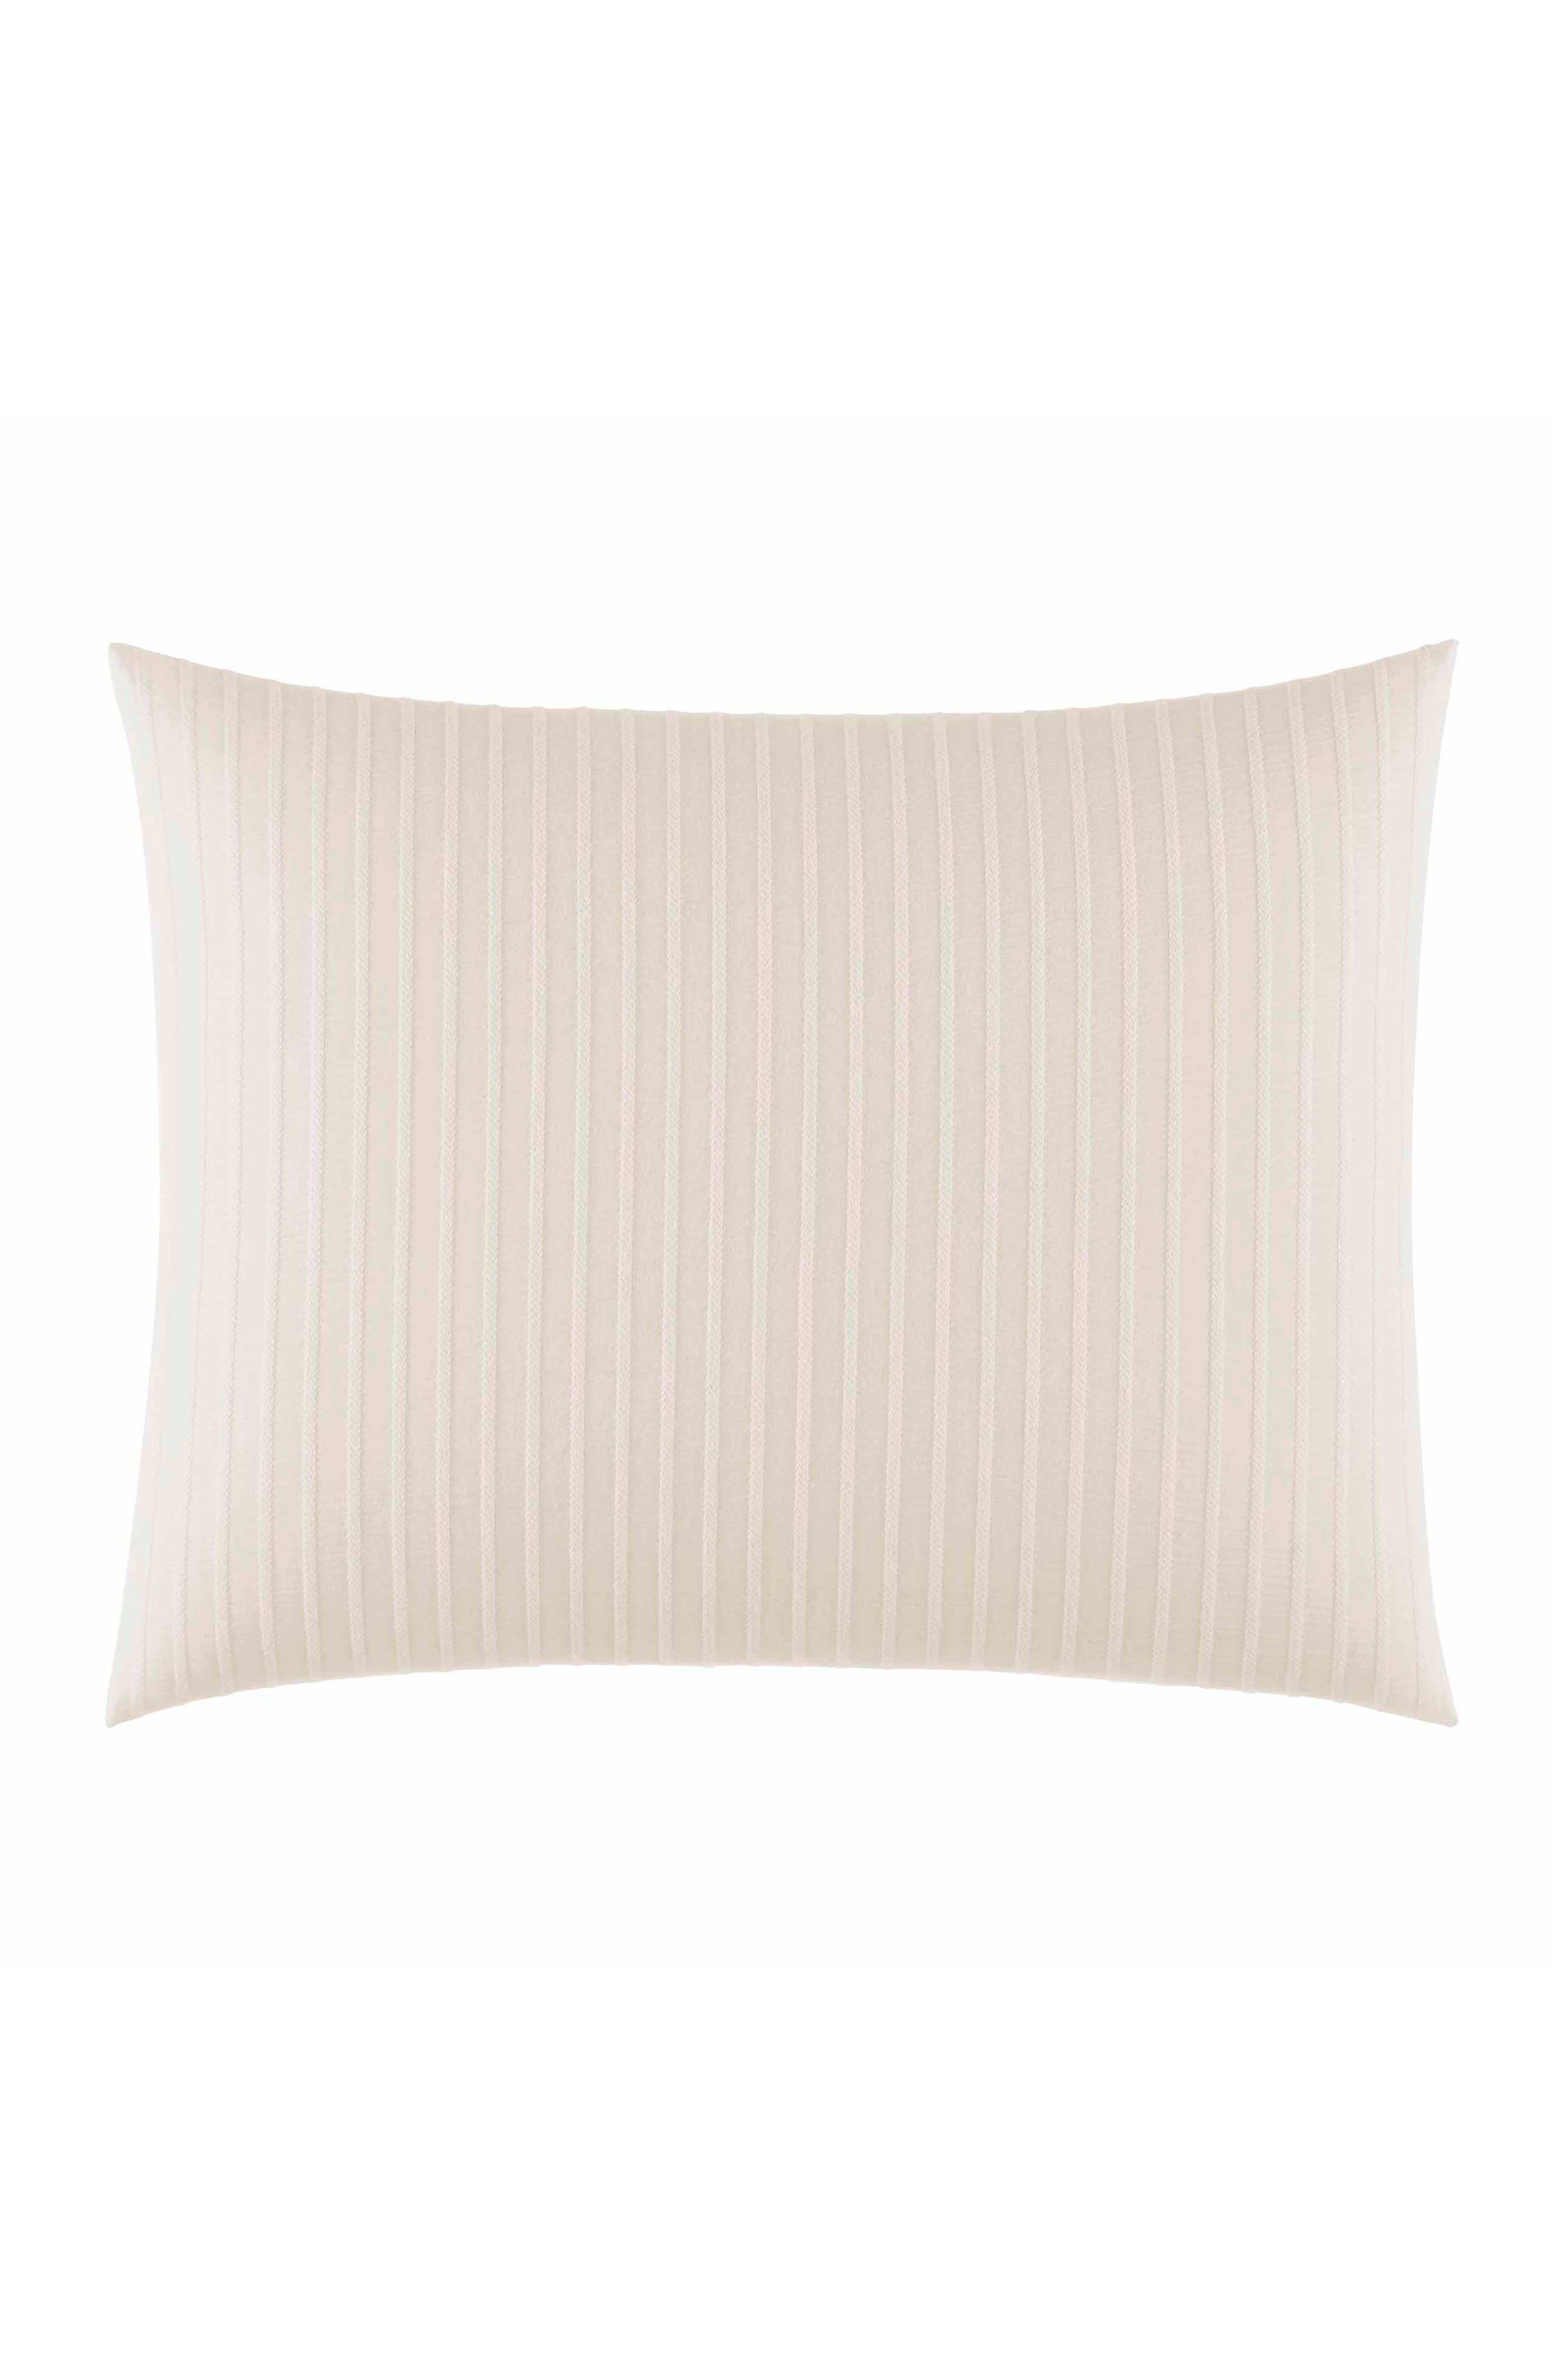 TOMMY BAHAMA,                             St. Armand's Breakfast Accent Pillow,                             Main thumbnail 1, color,                             ALABASTER